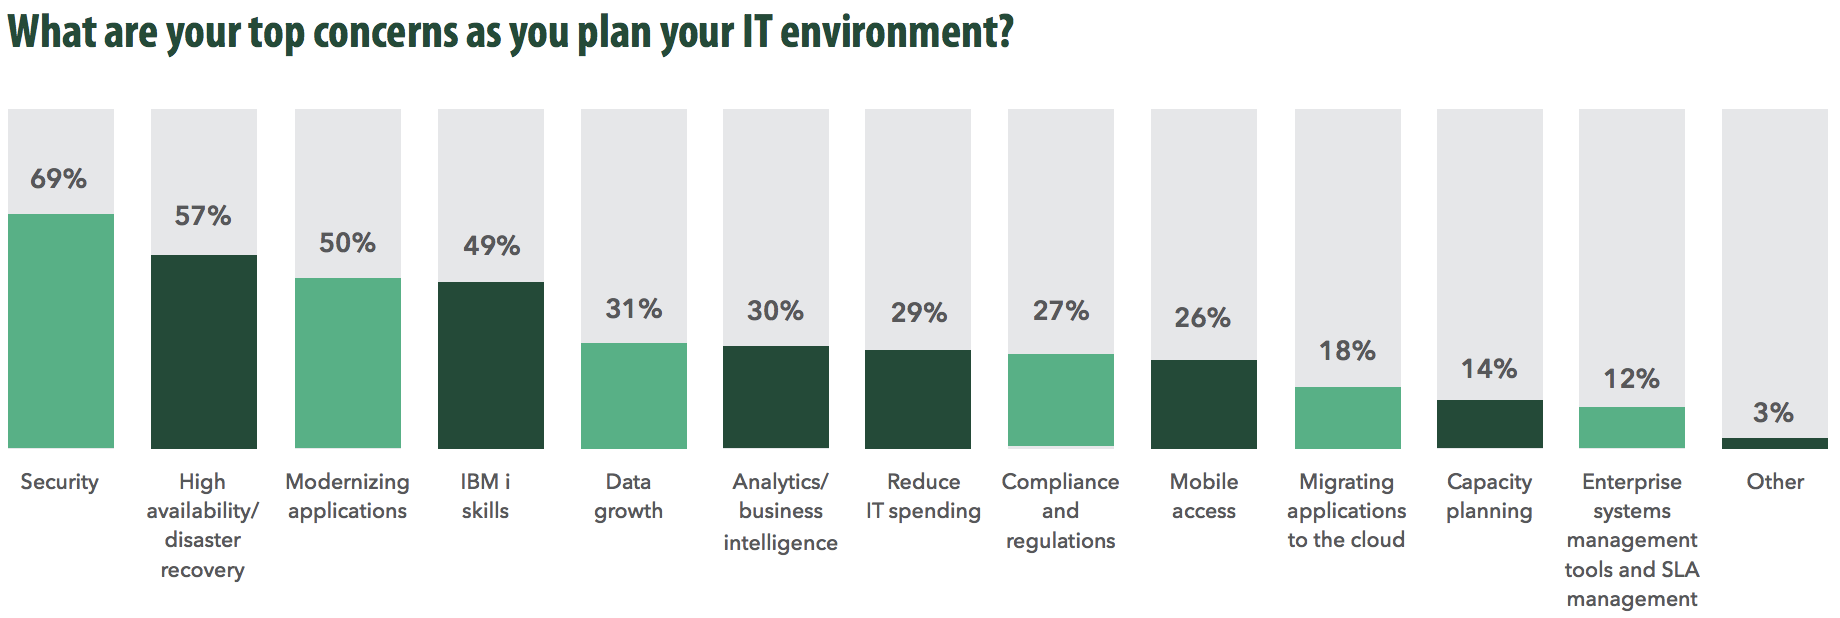 Bar graph of top concerns in IT environments